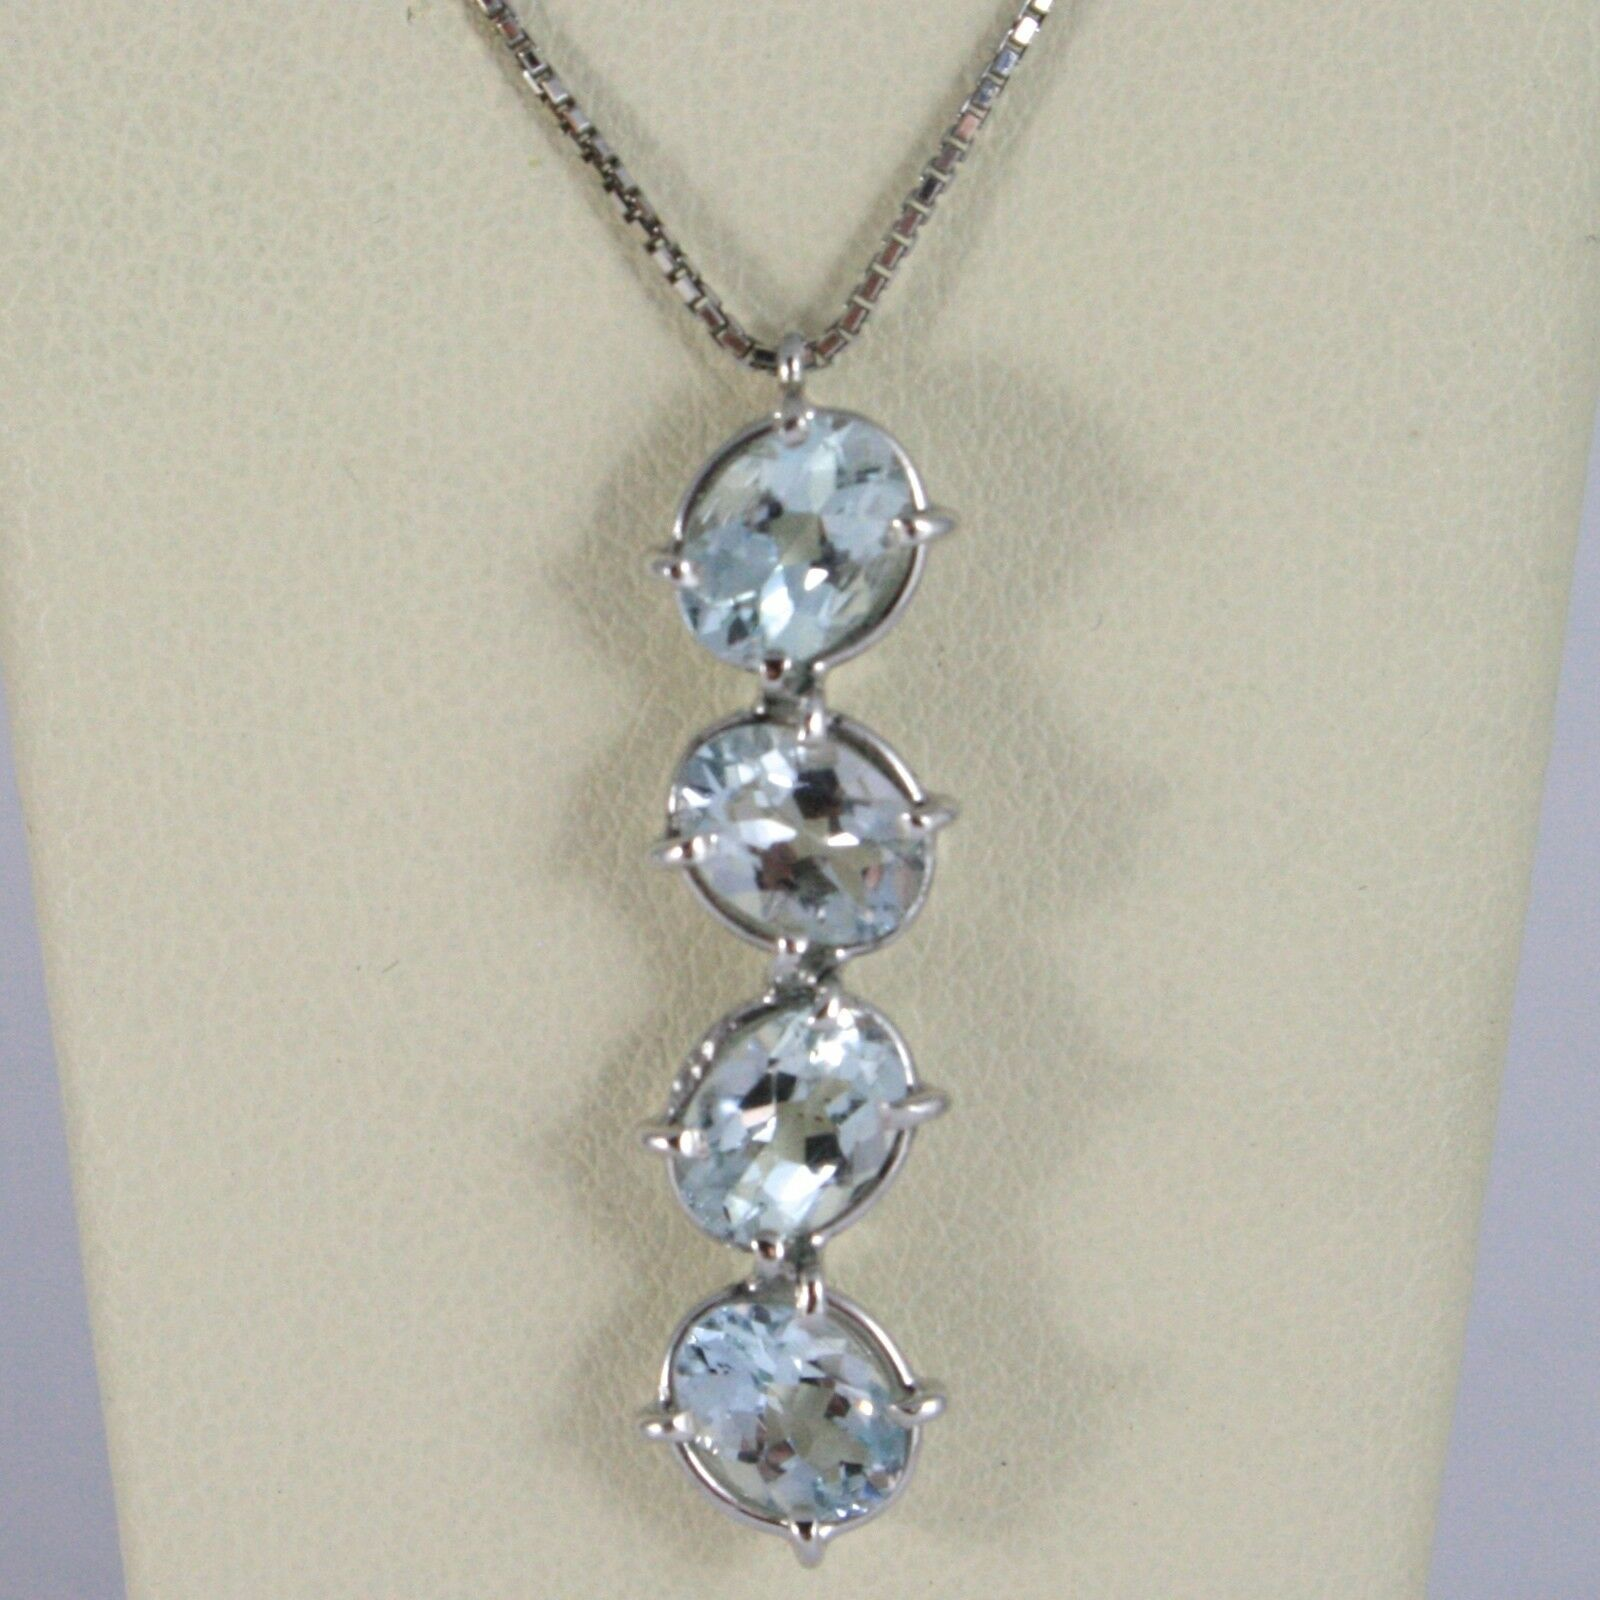 18K WHITE GOLD NECKLACE, OVAL CUT 4 AQUAMARINE PENDANT WITH VENETIAN CHAIN